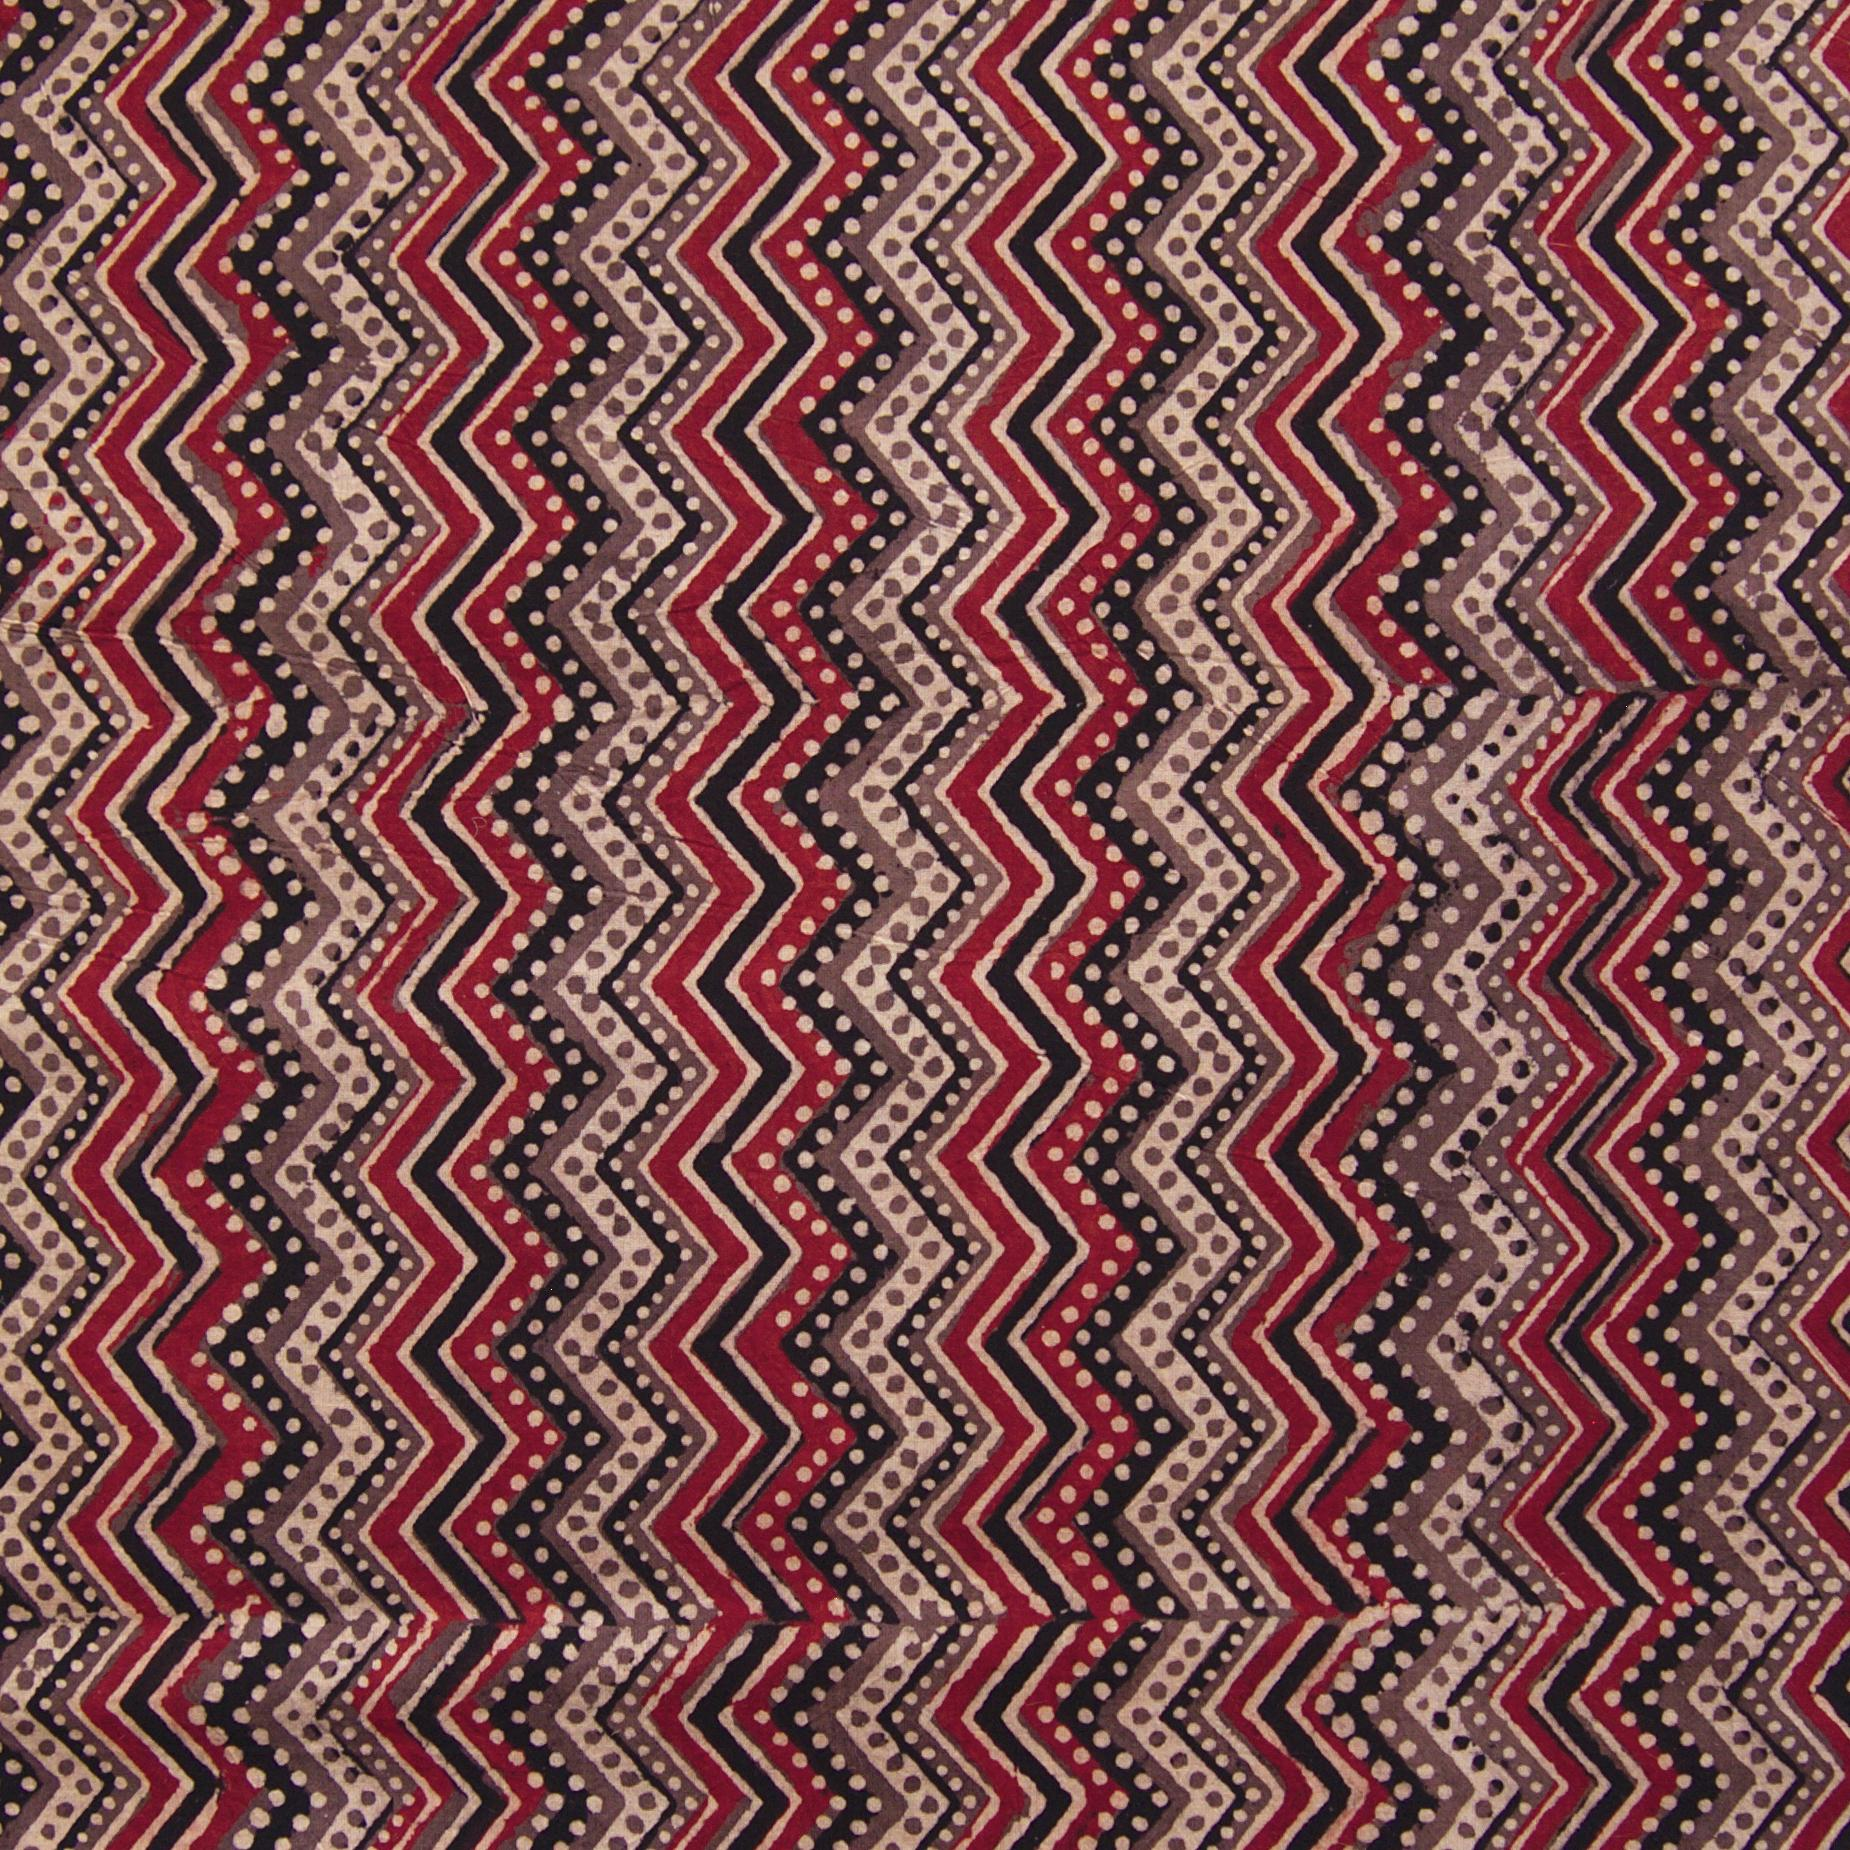 Block Printed Fabric, 100% Cotton, Ajrak Design: Beige Base, Coffee Brown, Iron Black, Madder Red ZigZag. Close Up